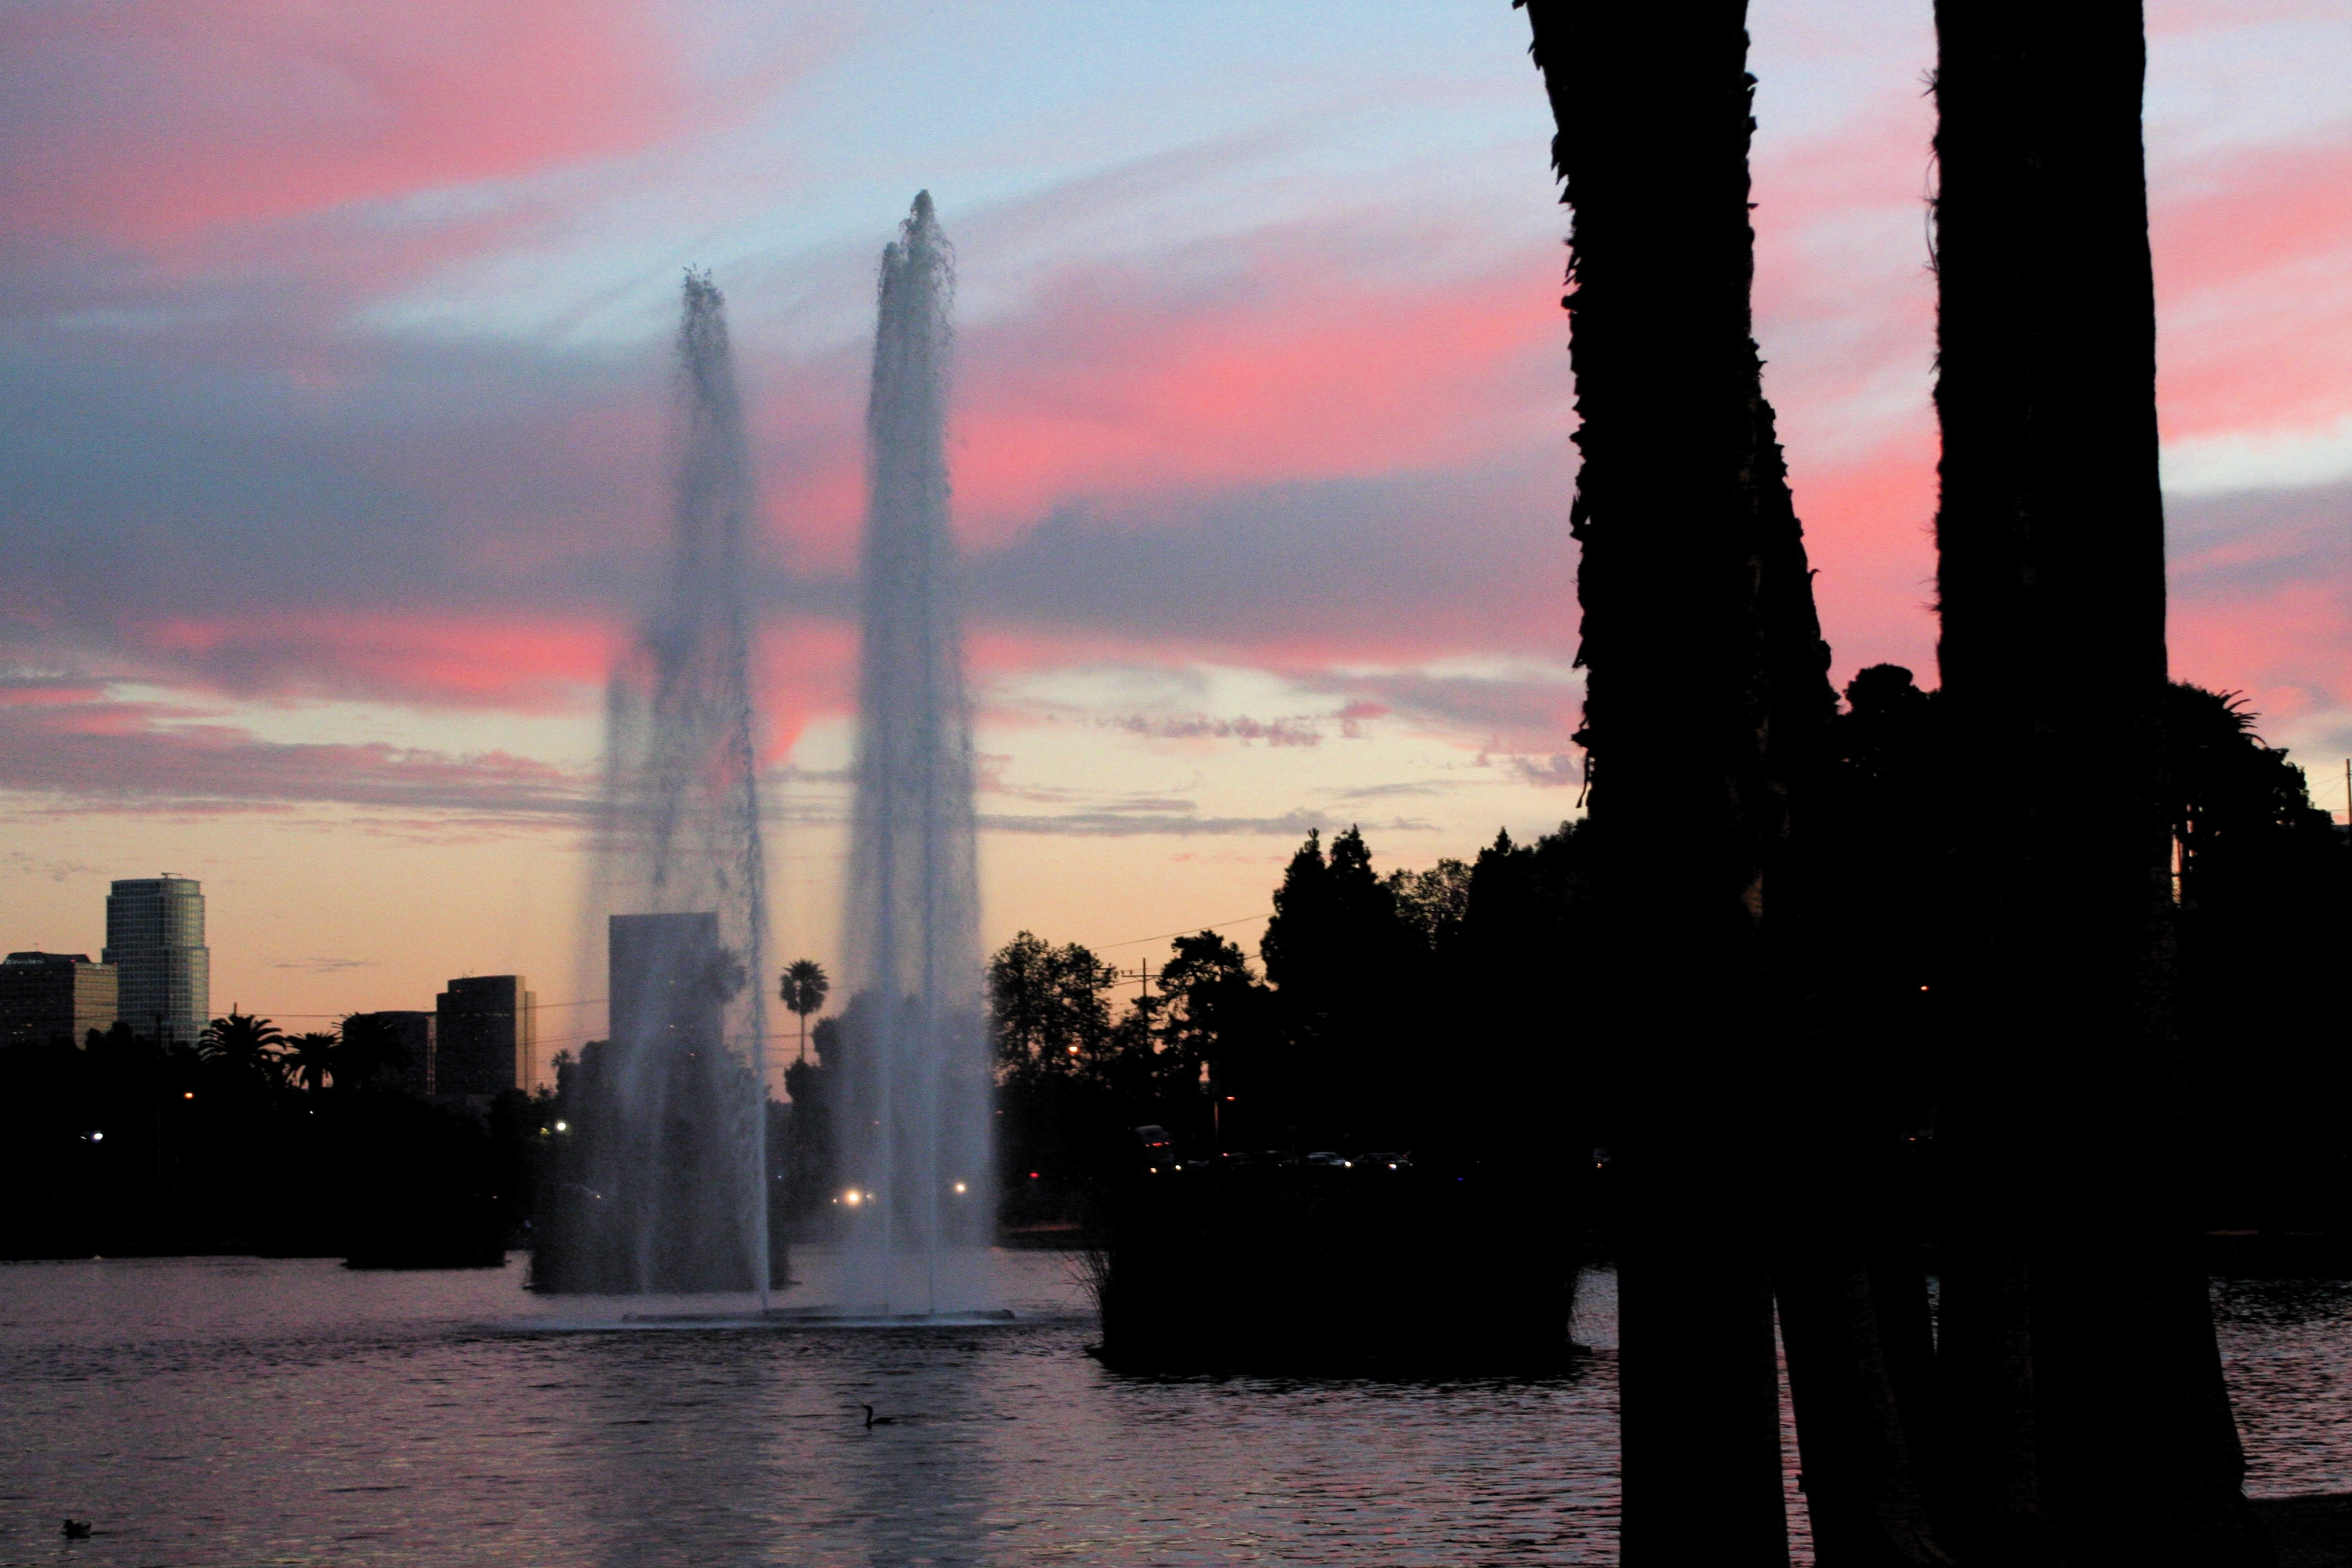 Where to stay in LA? Hip echo park has lots of soul and energy